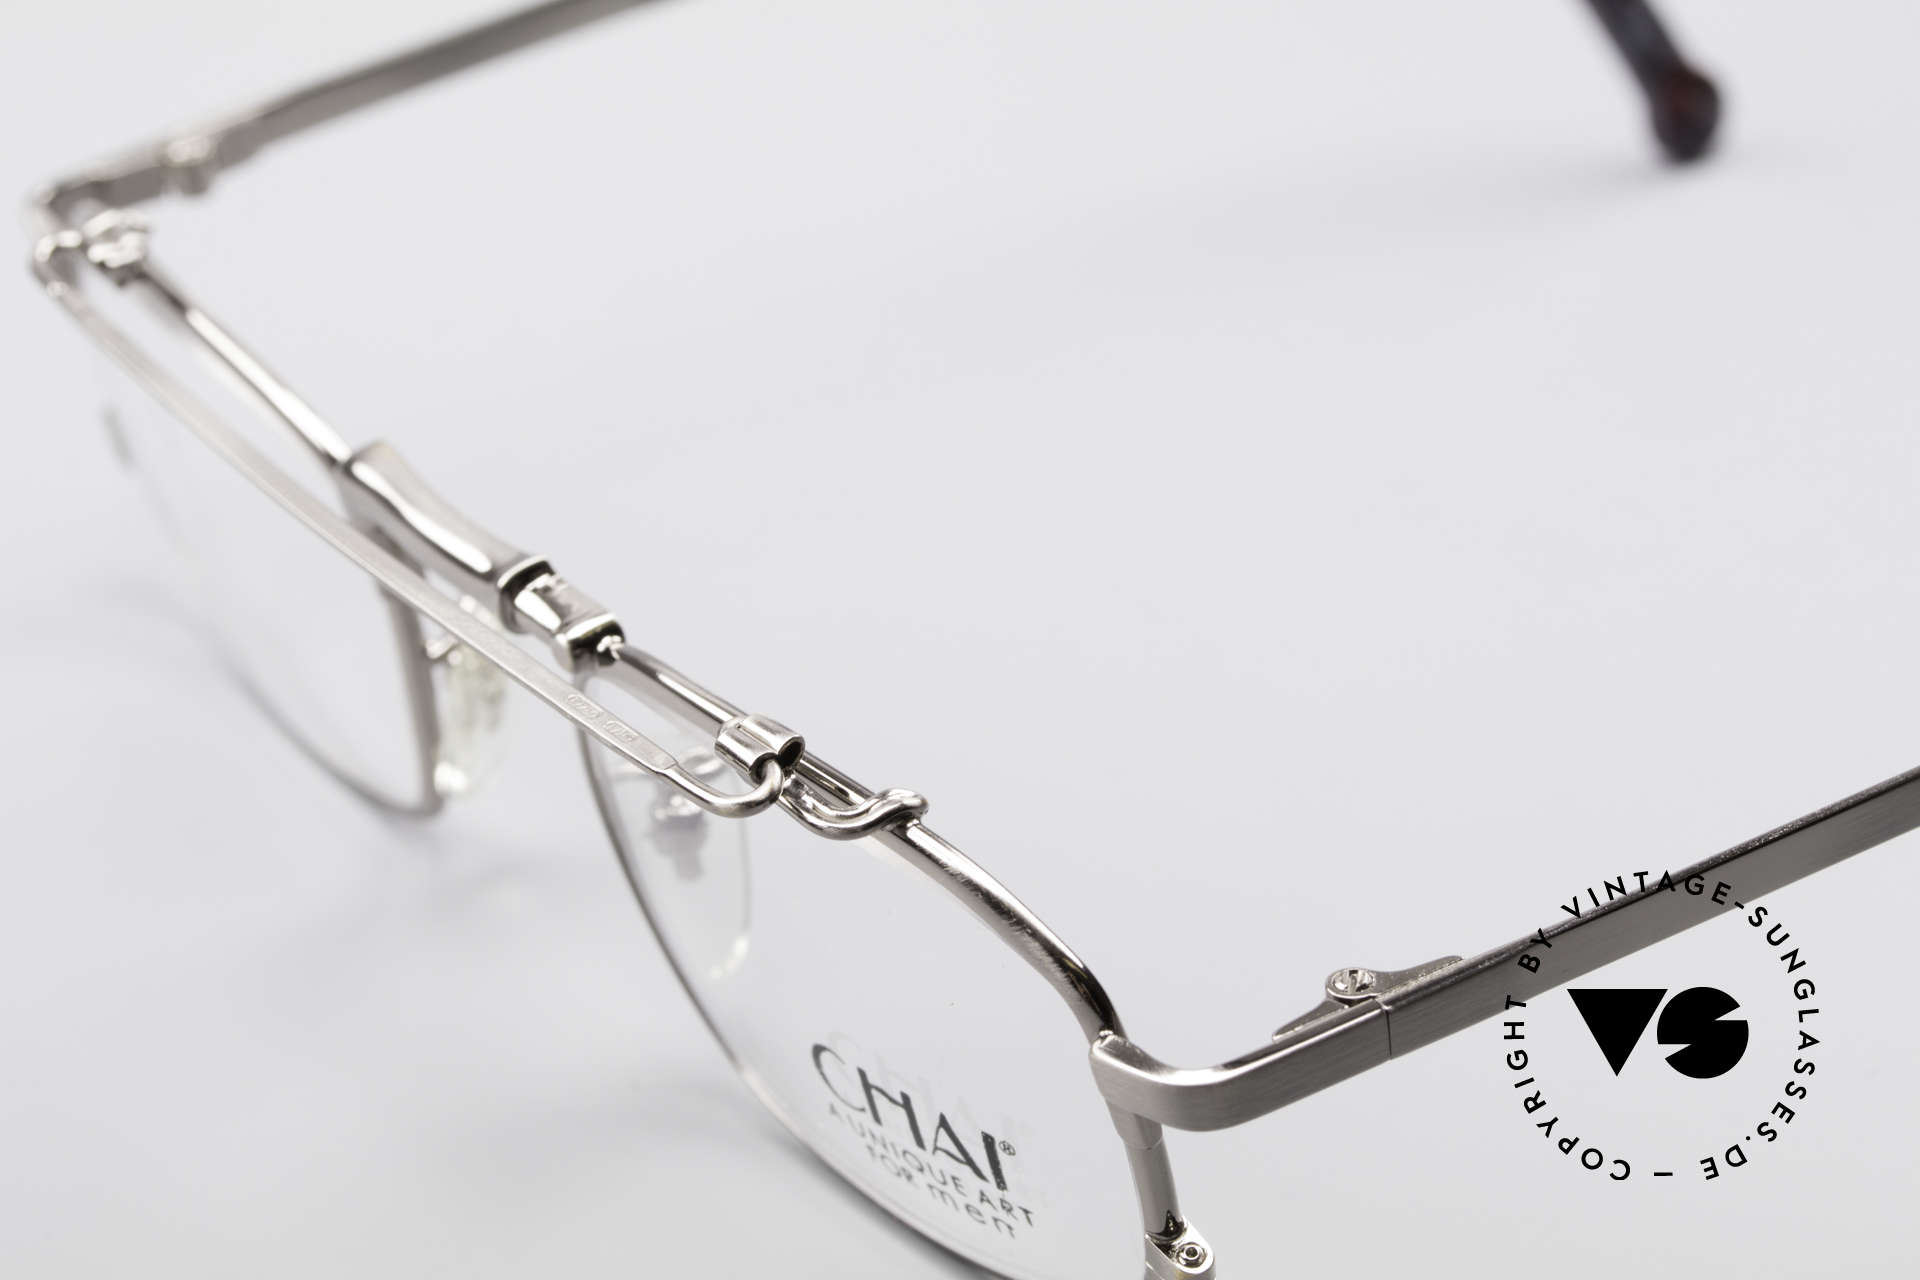 Chai No4 Square Industrial Vintage Eyeglasses, high-end quality (built to last) & industrial style!, Made for Men and Women